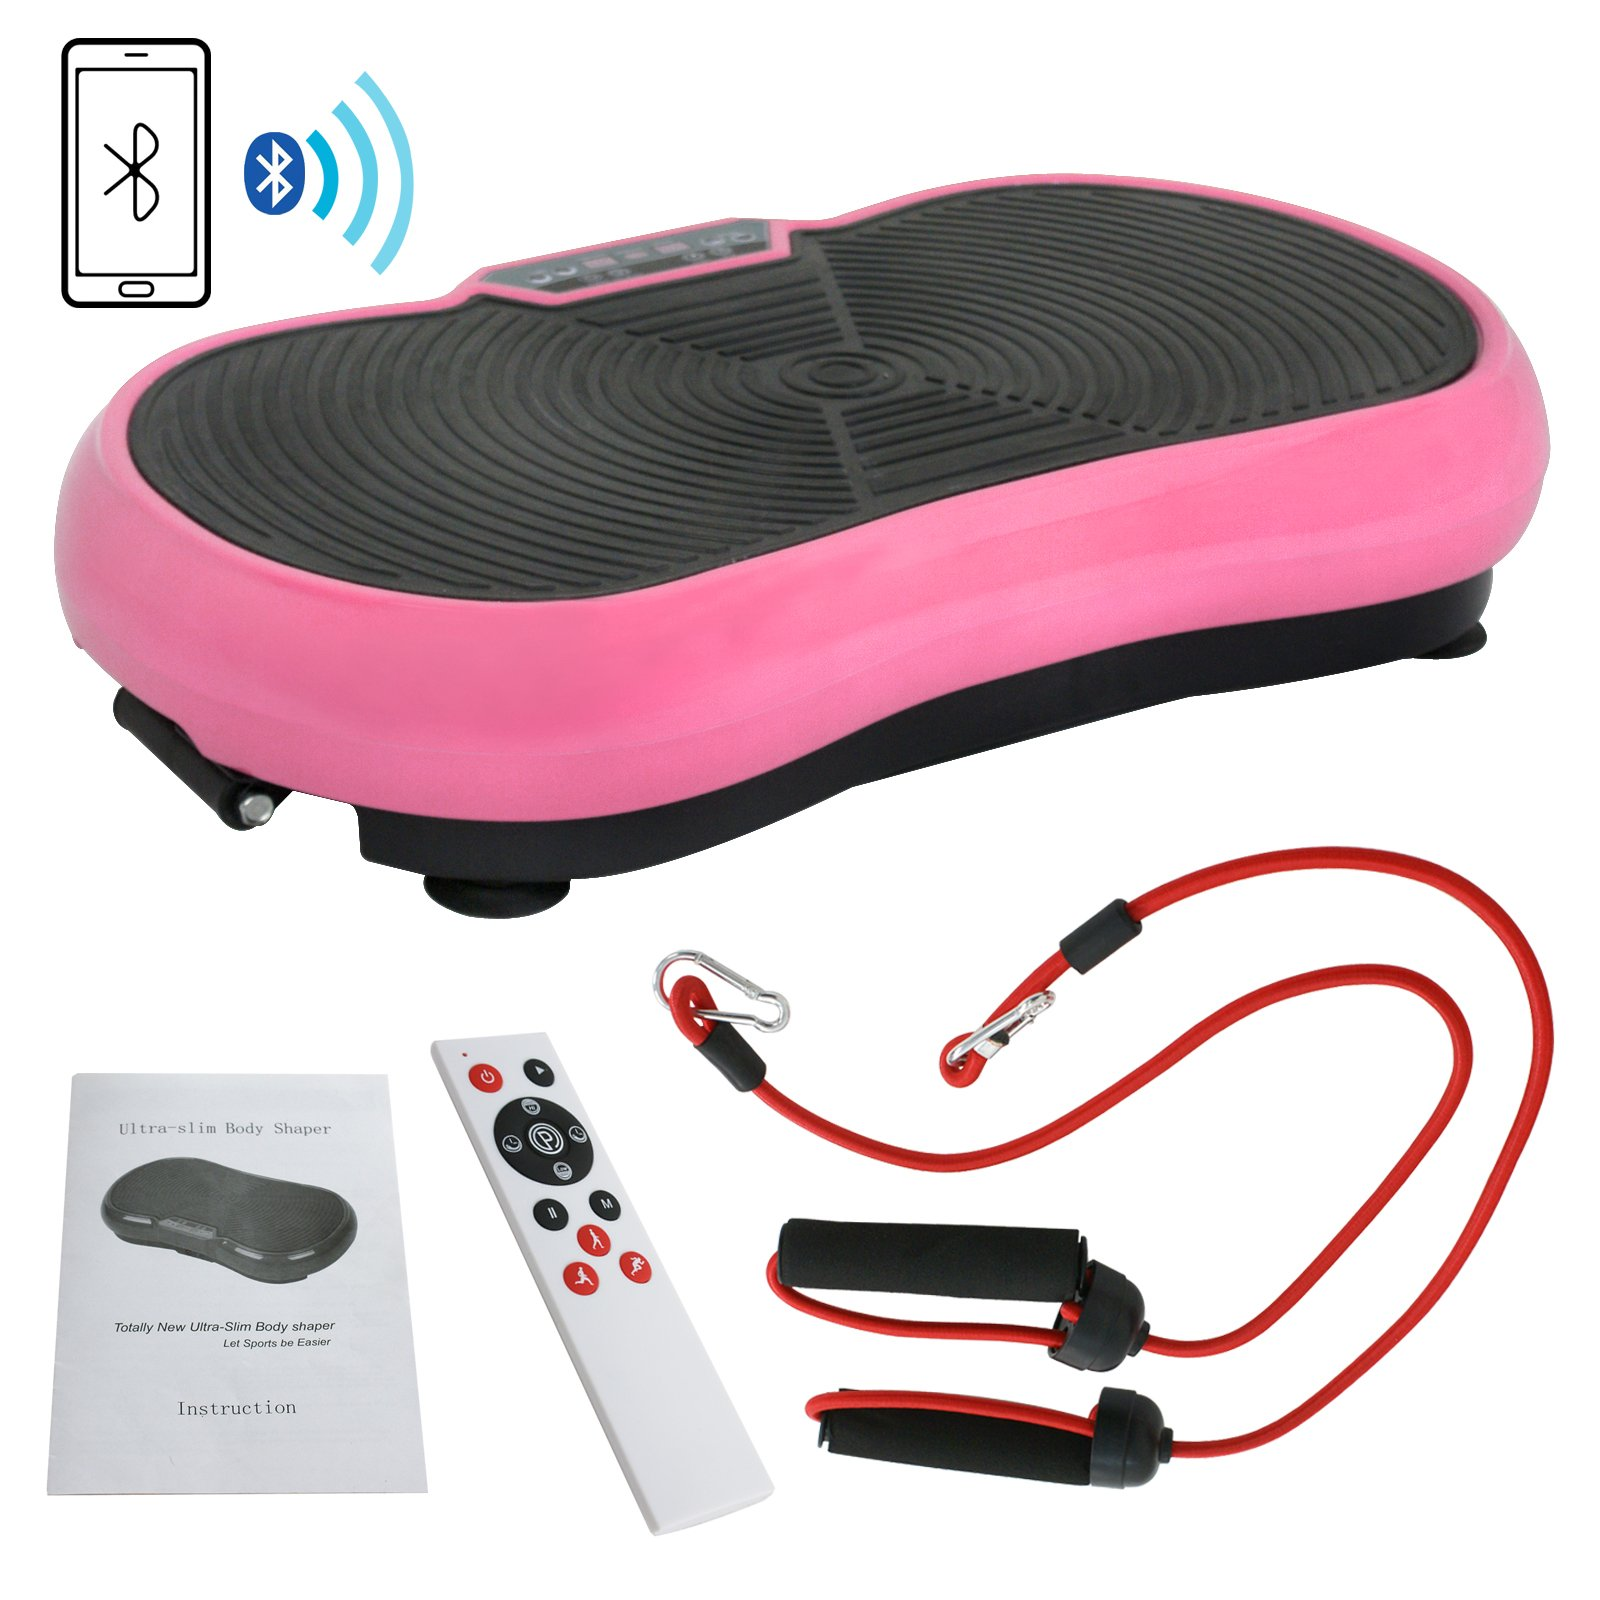 Fitness Vibration Platform Full Body Workout Machine Fit Vibration Plate W/Remote Control and Resistance Bands, Bluetooth Exercise Equipment (Pink) by Nova Microdermabrasion (Image #1)